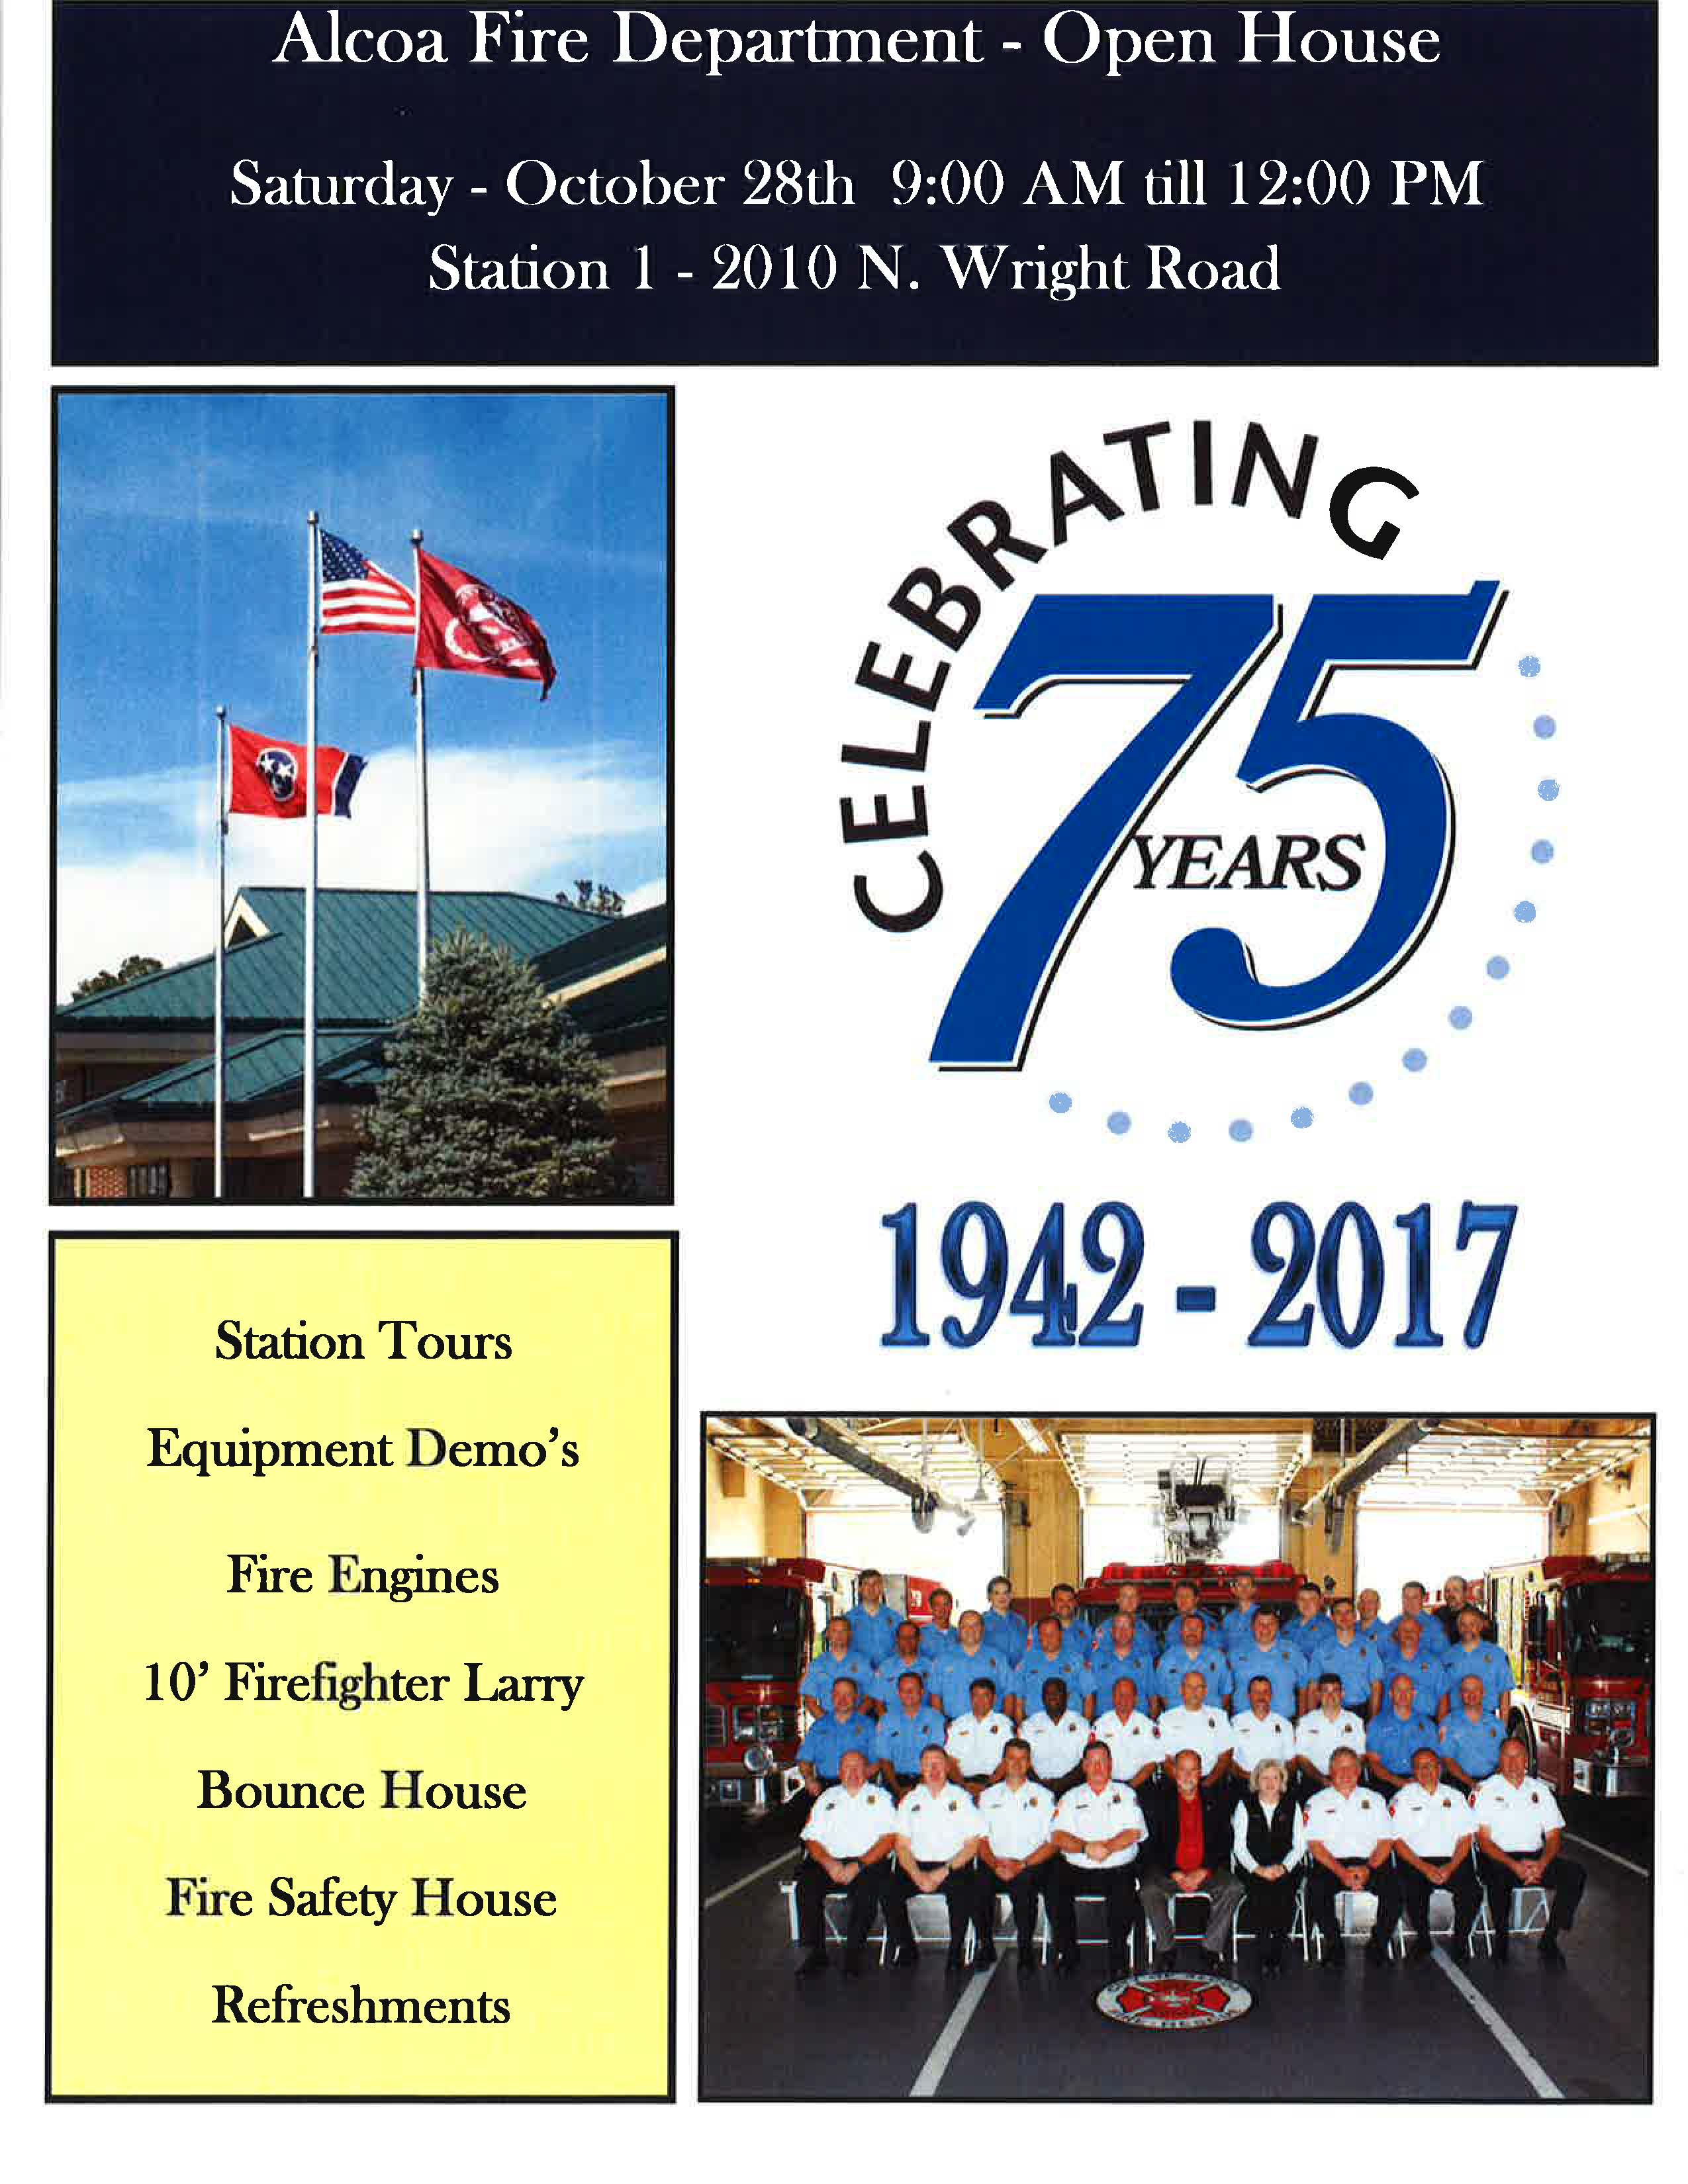 75th Anniversary AFD flyer describing event